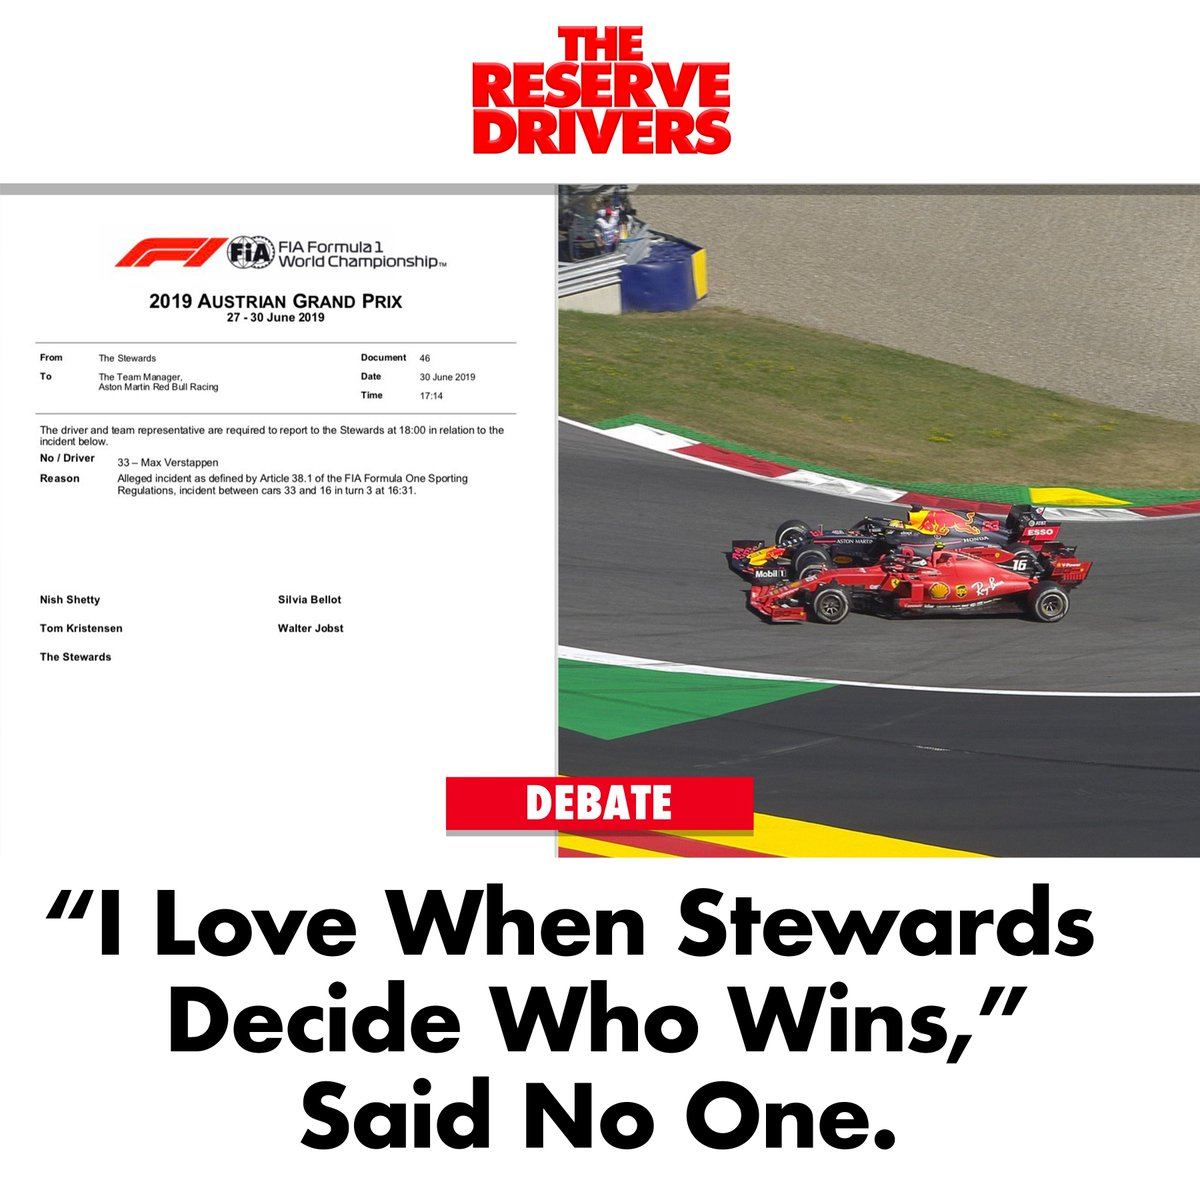 """""""Epic on track battles are even better when the Stewards get involved!"""" #AustrianGP #F1"""